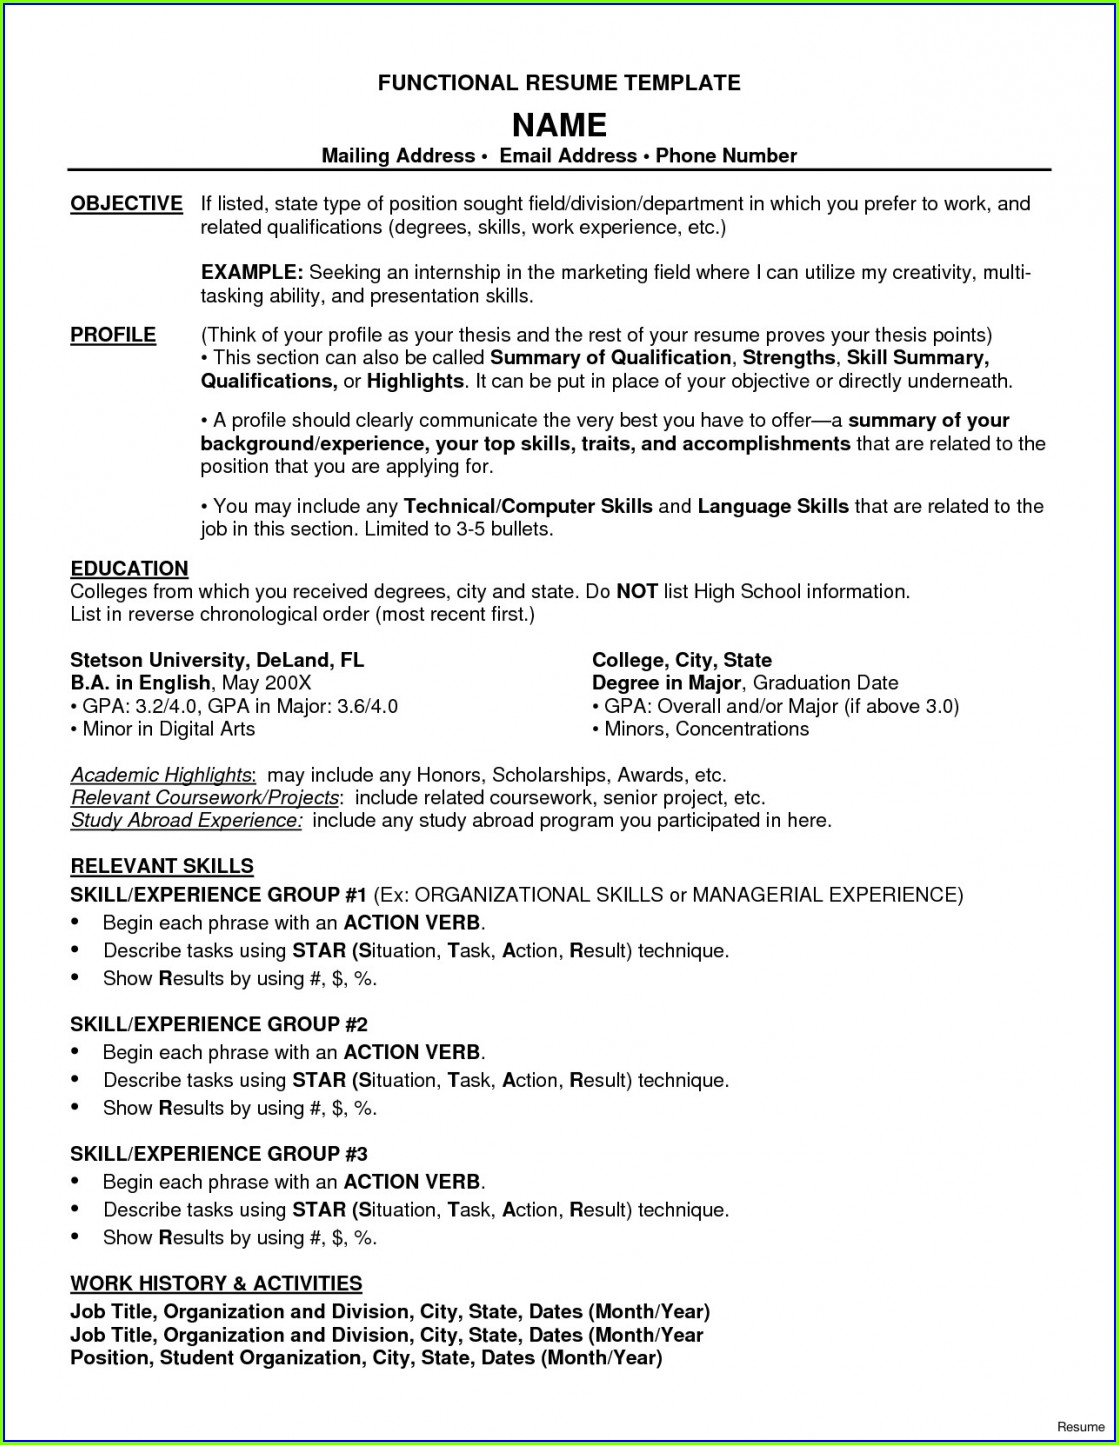 Free Functional Resume Examples